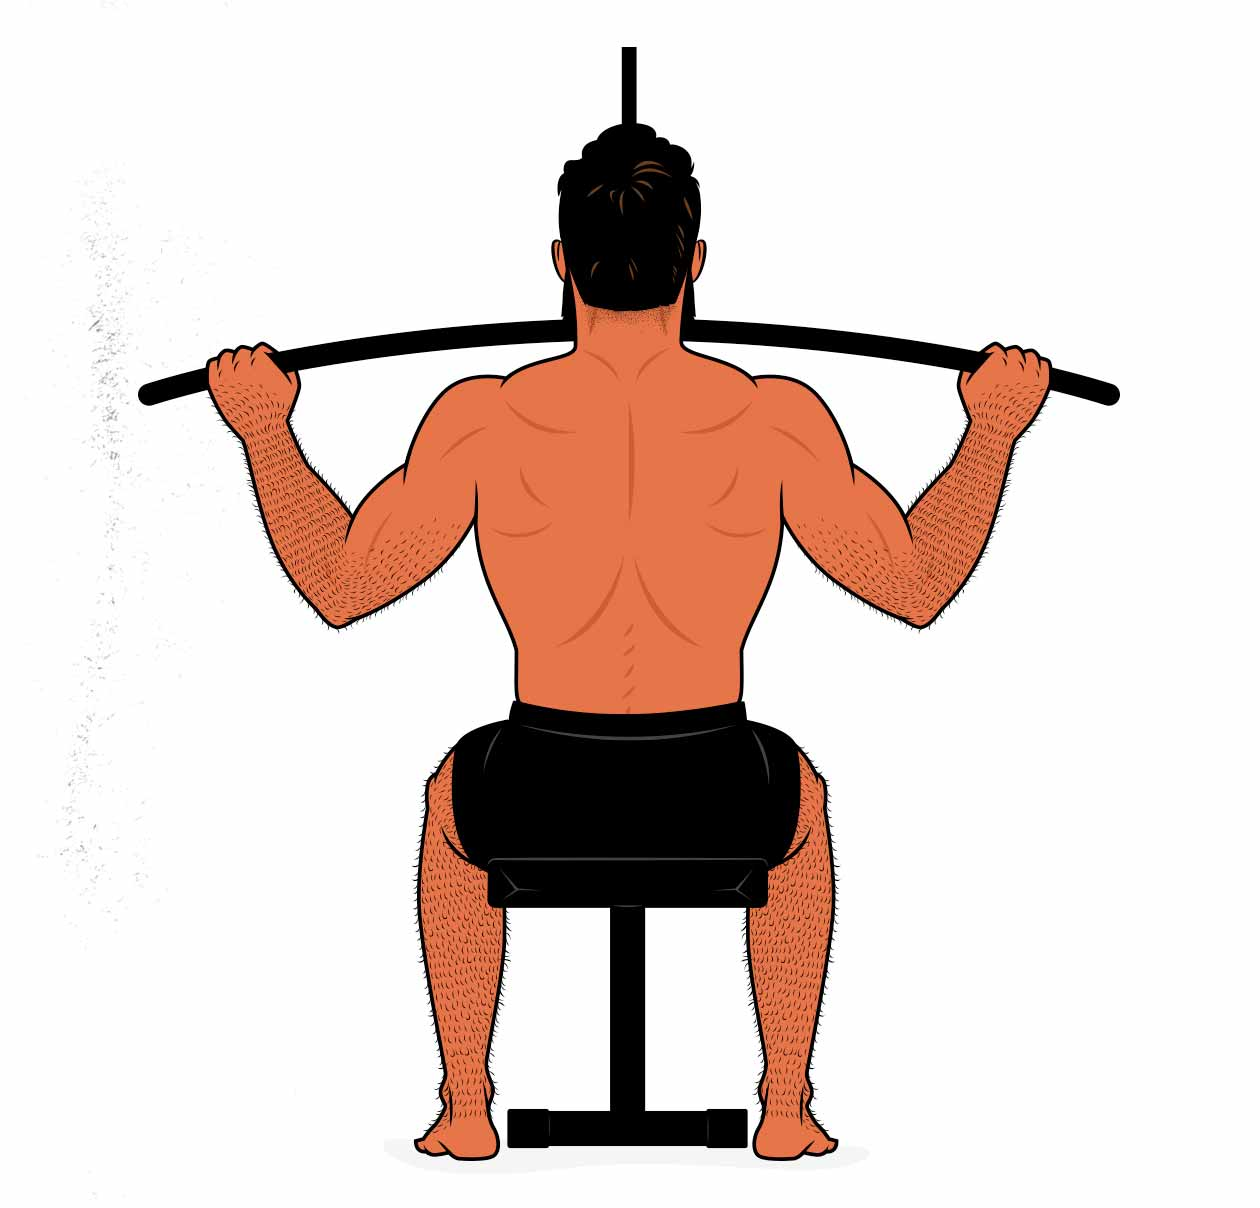 Illustration showing a man doing the lat pulldown exercise.